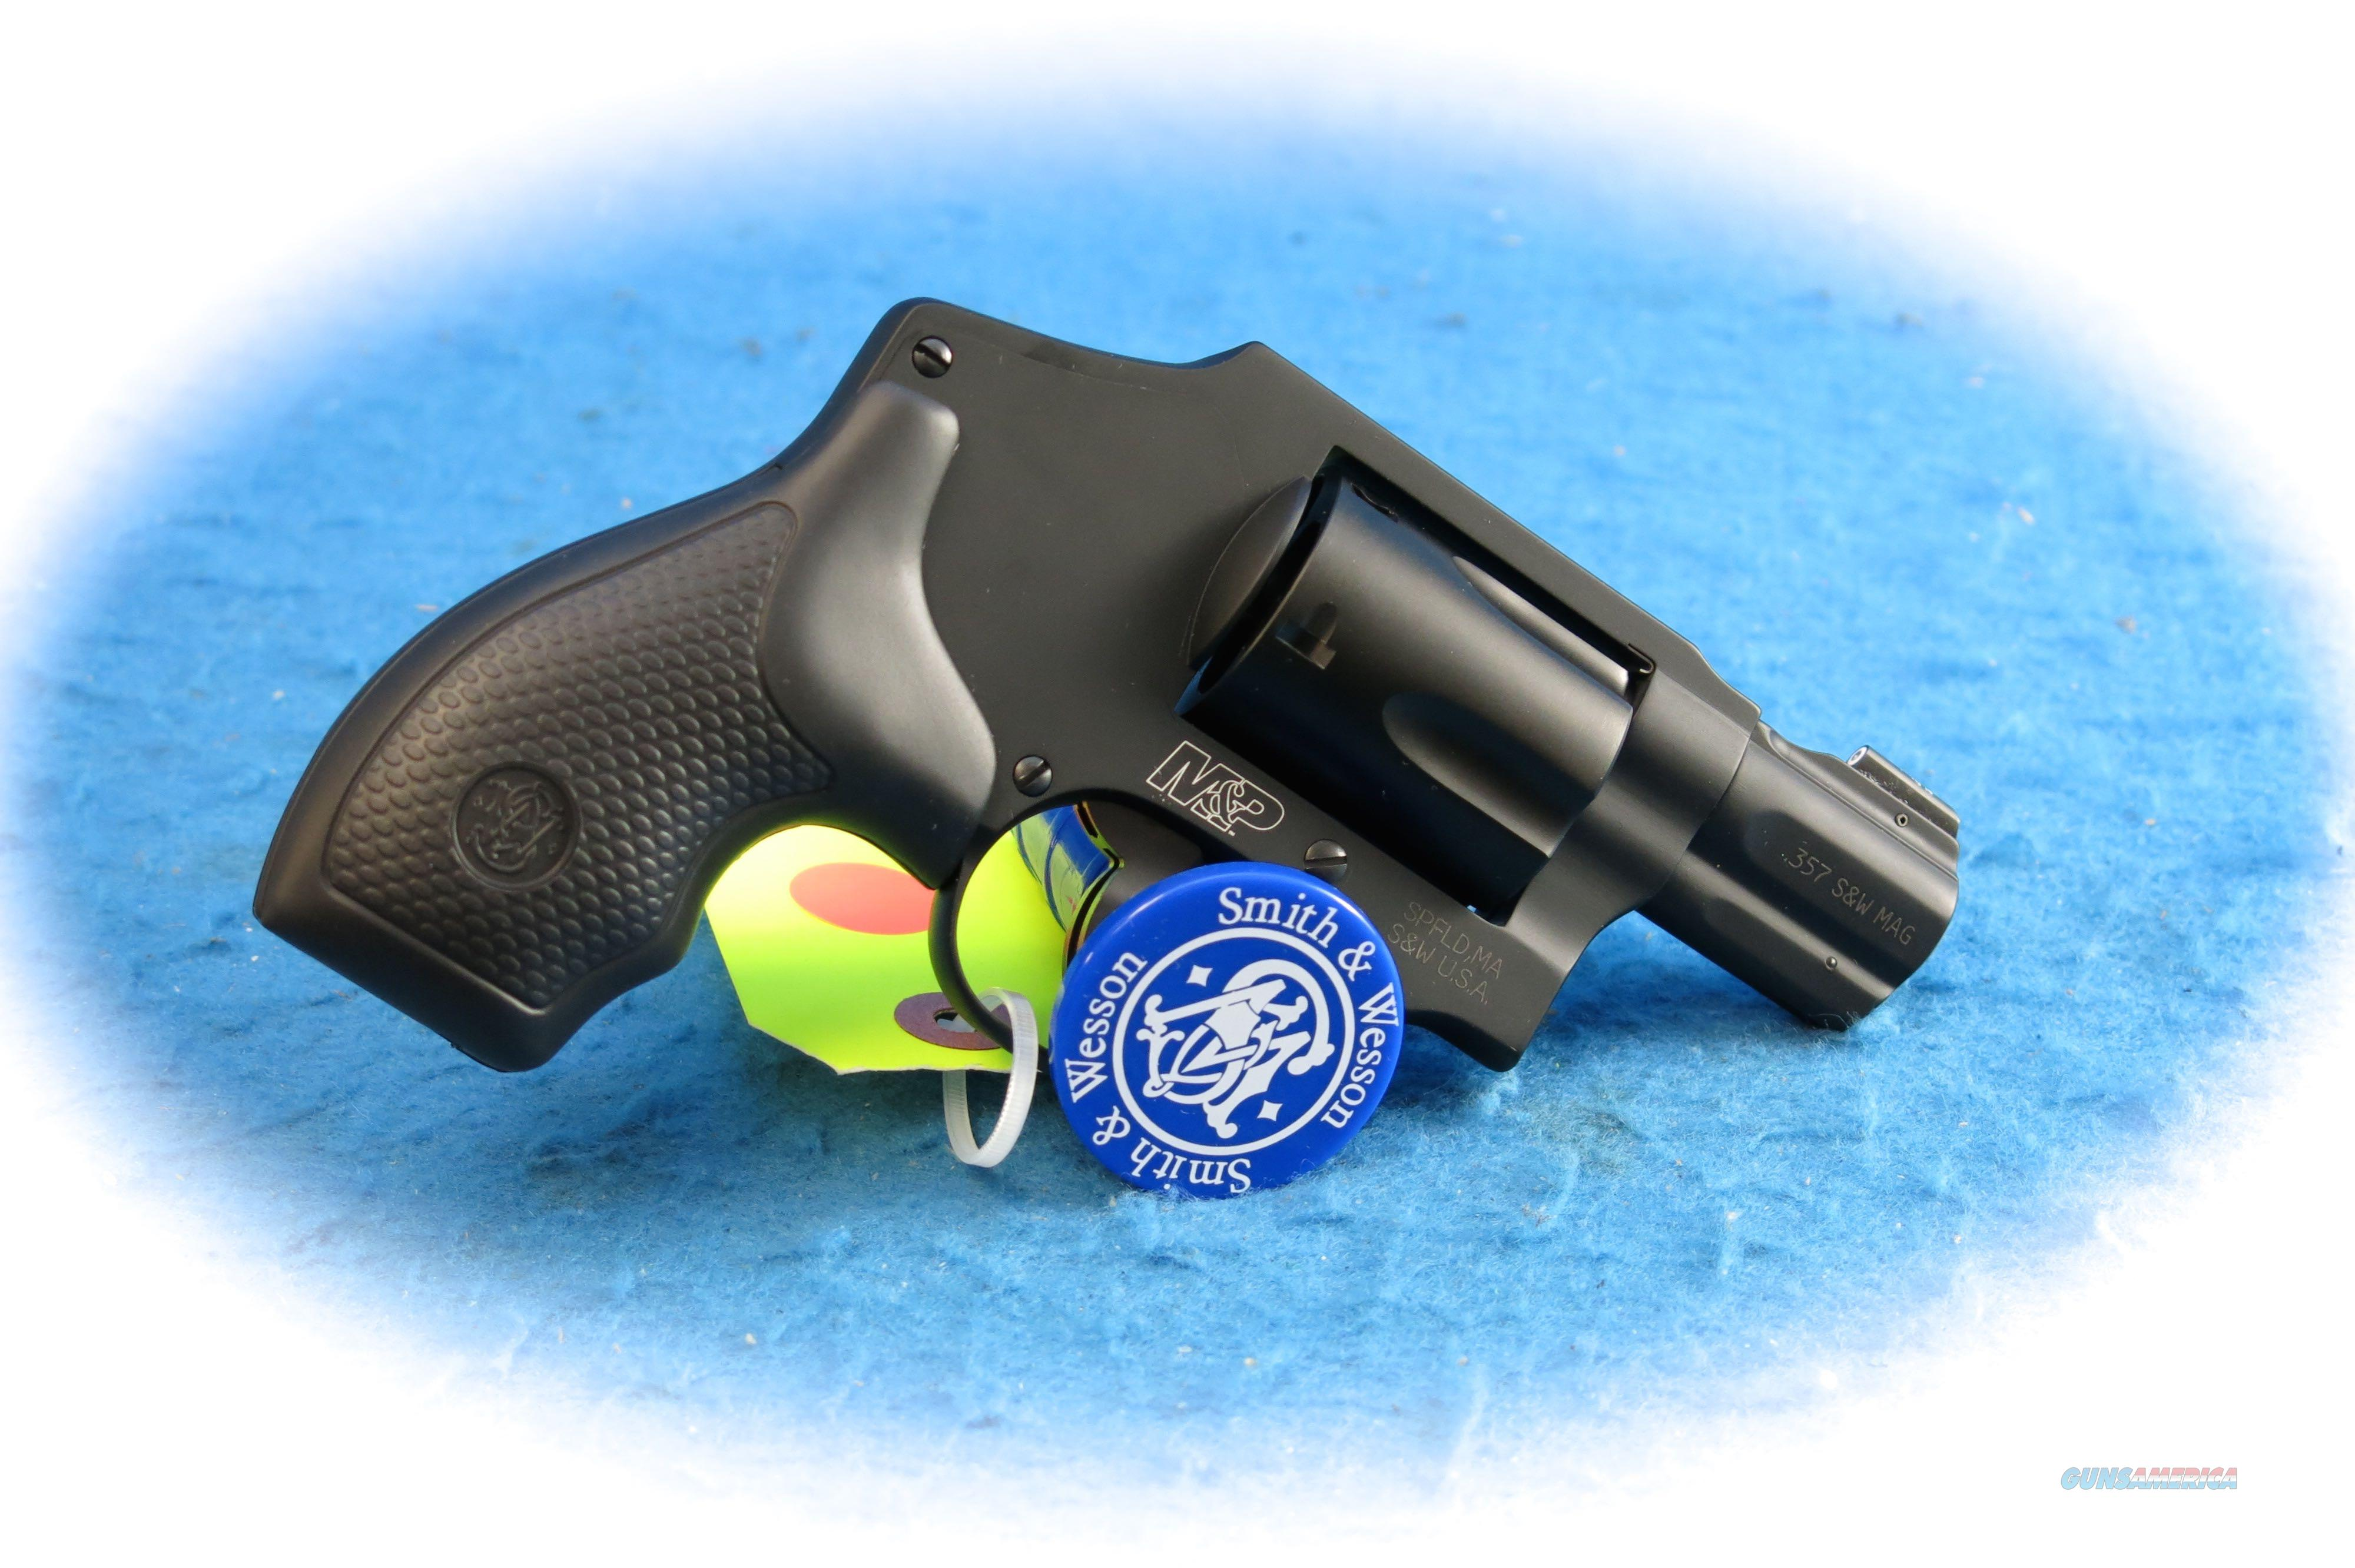 Smith & Wesson M&P340 .357 Mag Revolver W/Night Site **New**  Guns > Pistols > Smith & Wesson Revolvers > Pocket Pistols